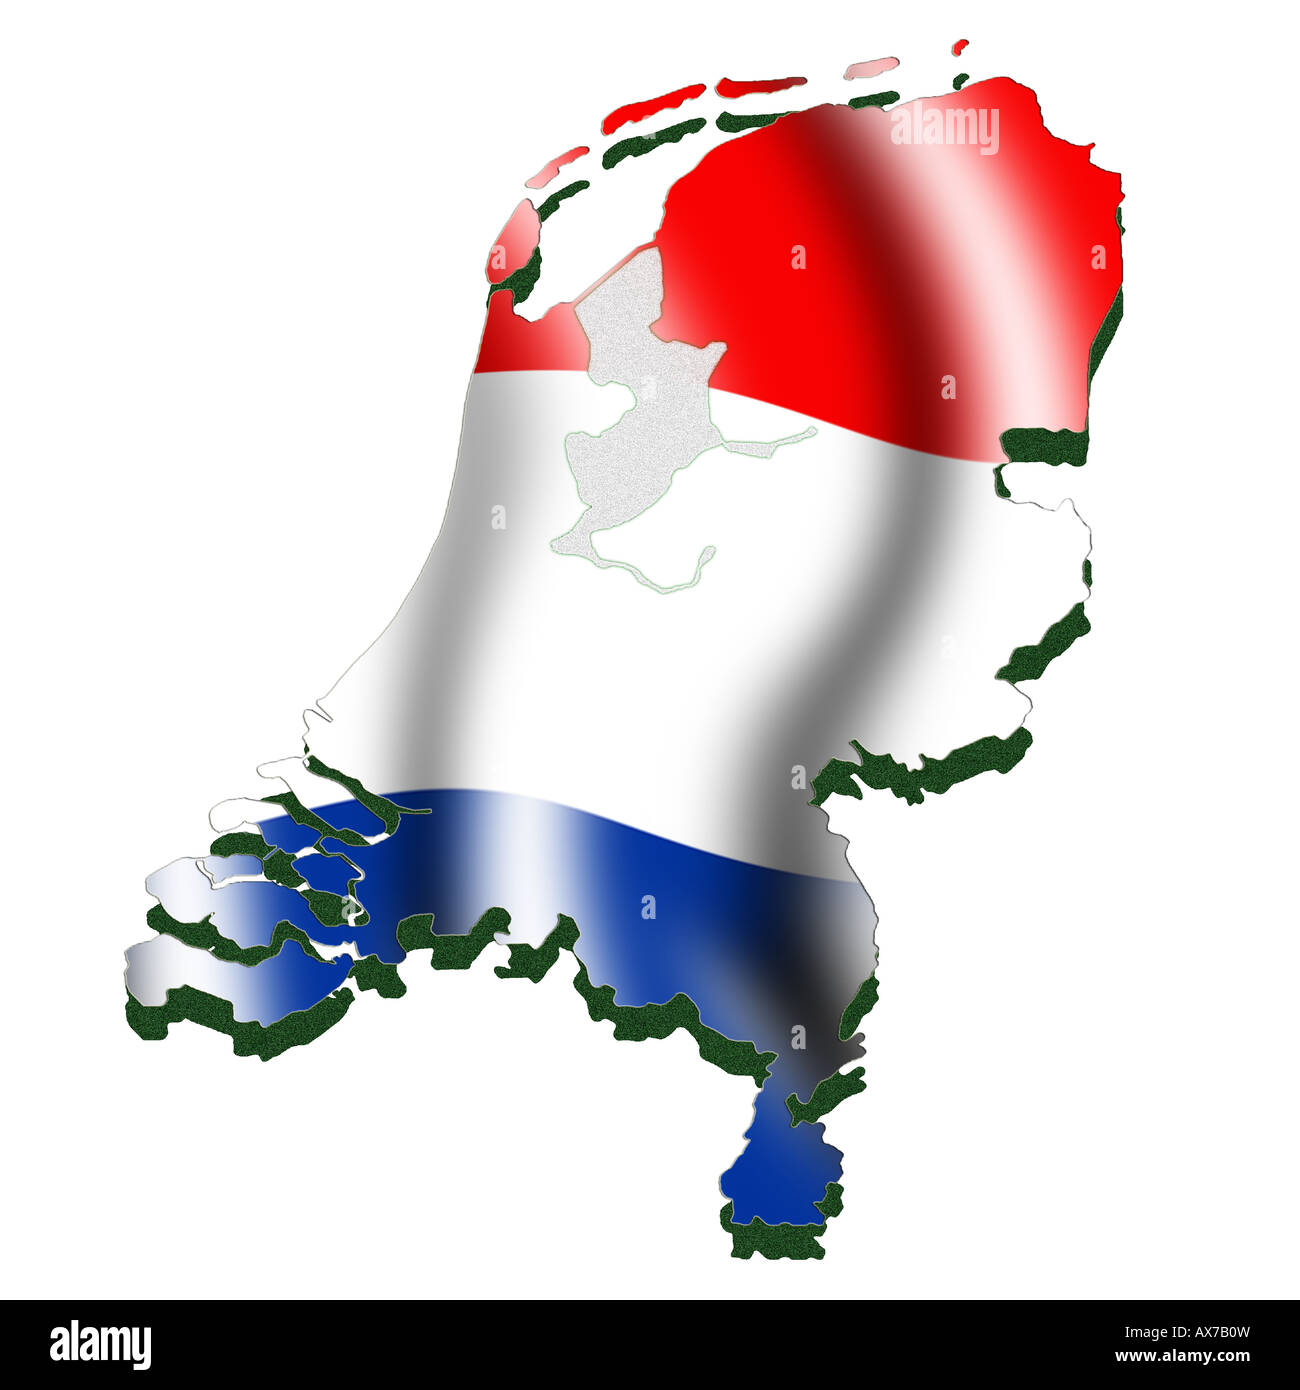 Holland country map stock photos holland country map stock images outline map and flag of holland stock image gumiabroncs Gallery